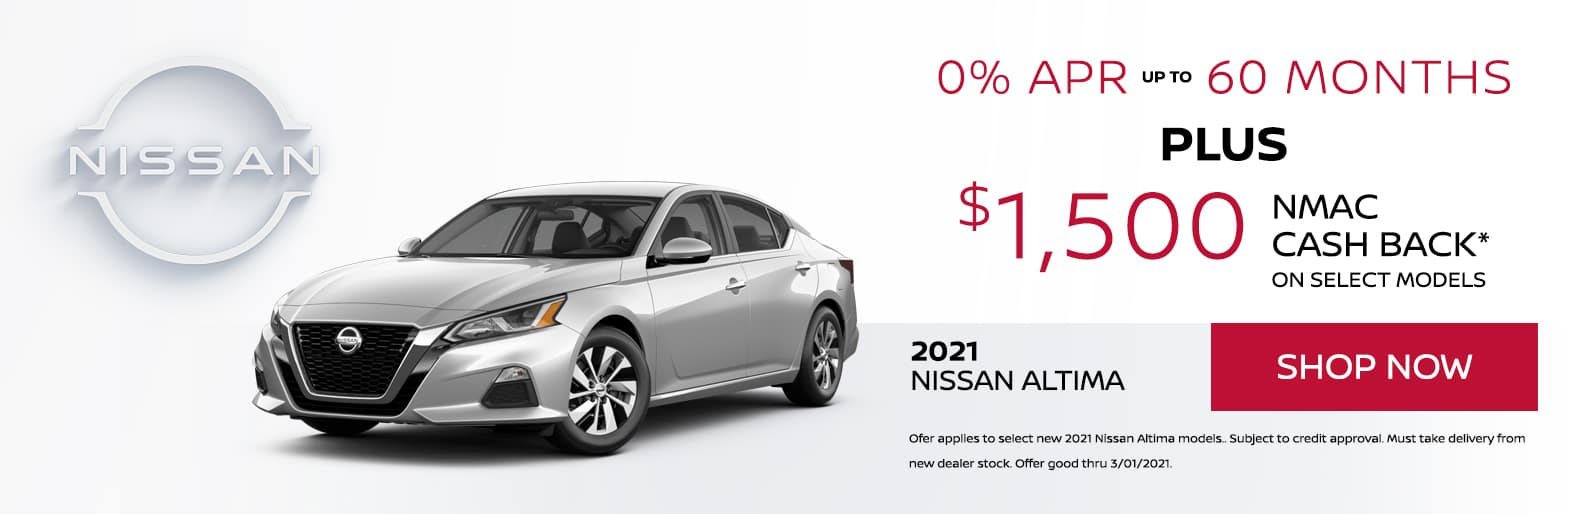 MY21 Nissan Altima 0% APR up to 60 months plus $1,500 NMAC Cash Back* on select models.